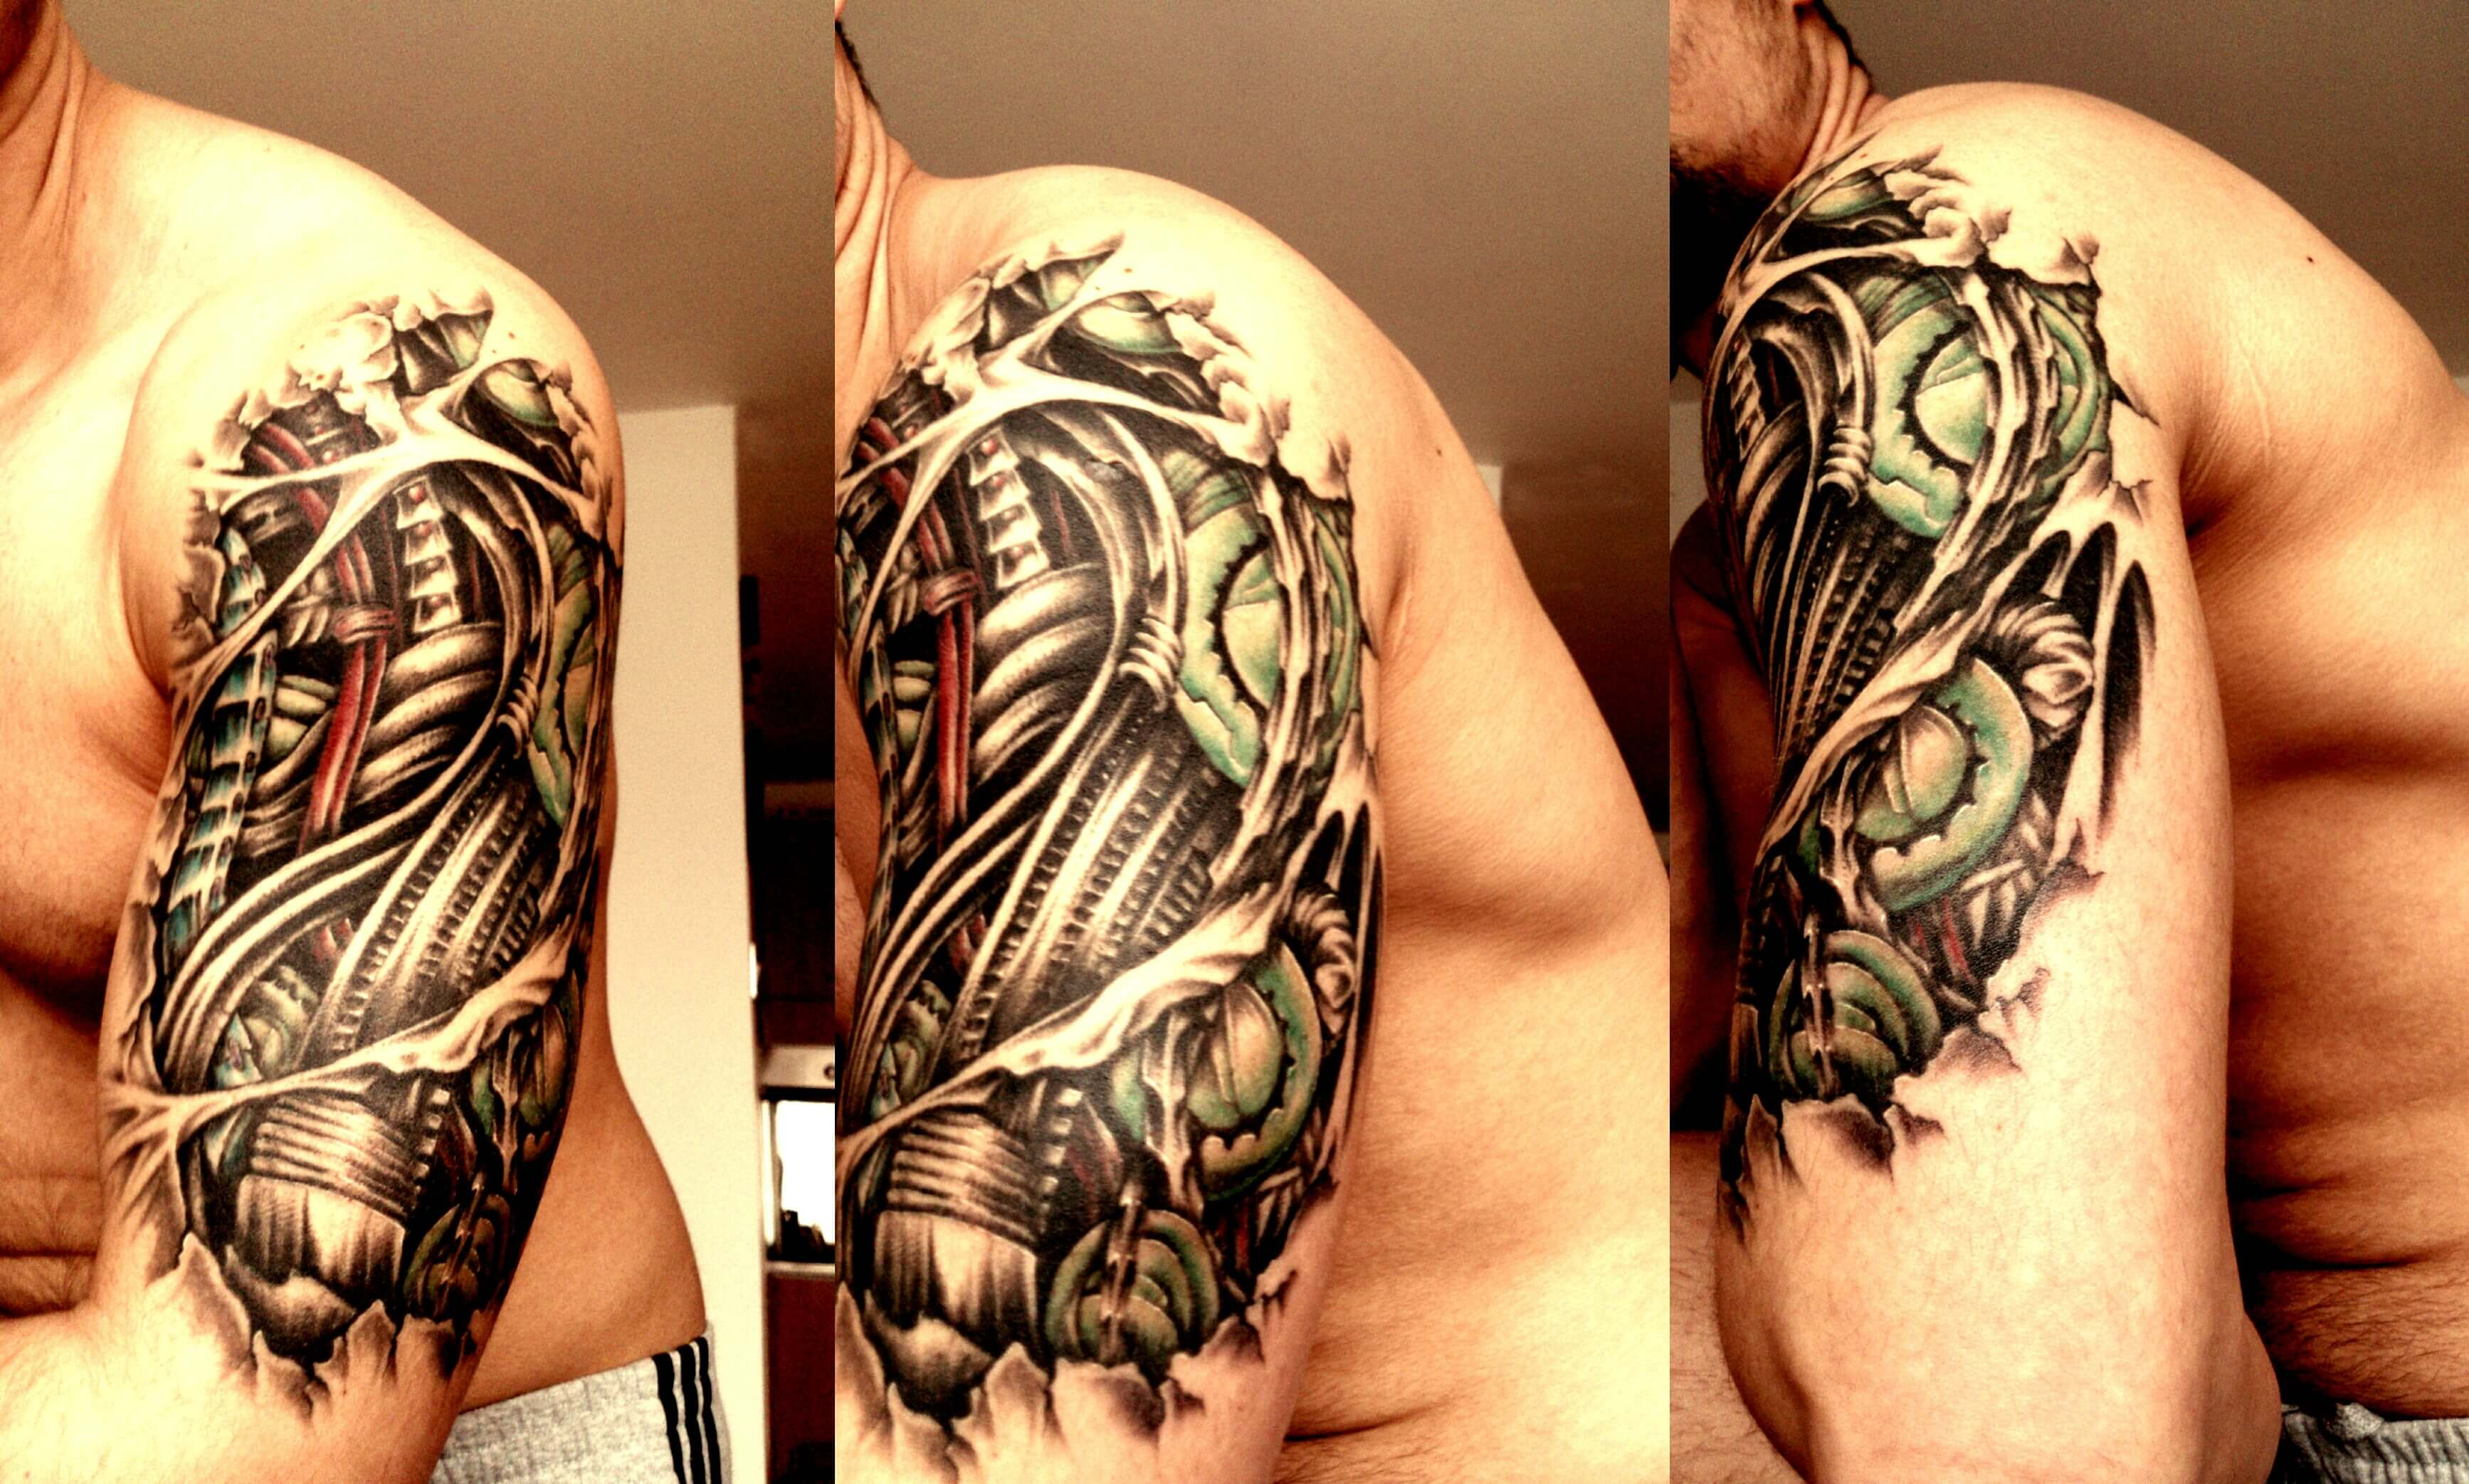 c663feccc ... Amazing_dark_biomechanical_tattoo_on_arm Robot-Machine-Arm-Sleeve-Flash- Tattoo 3D-Biomechanical-Tattoos-For-Men-4 ...